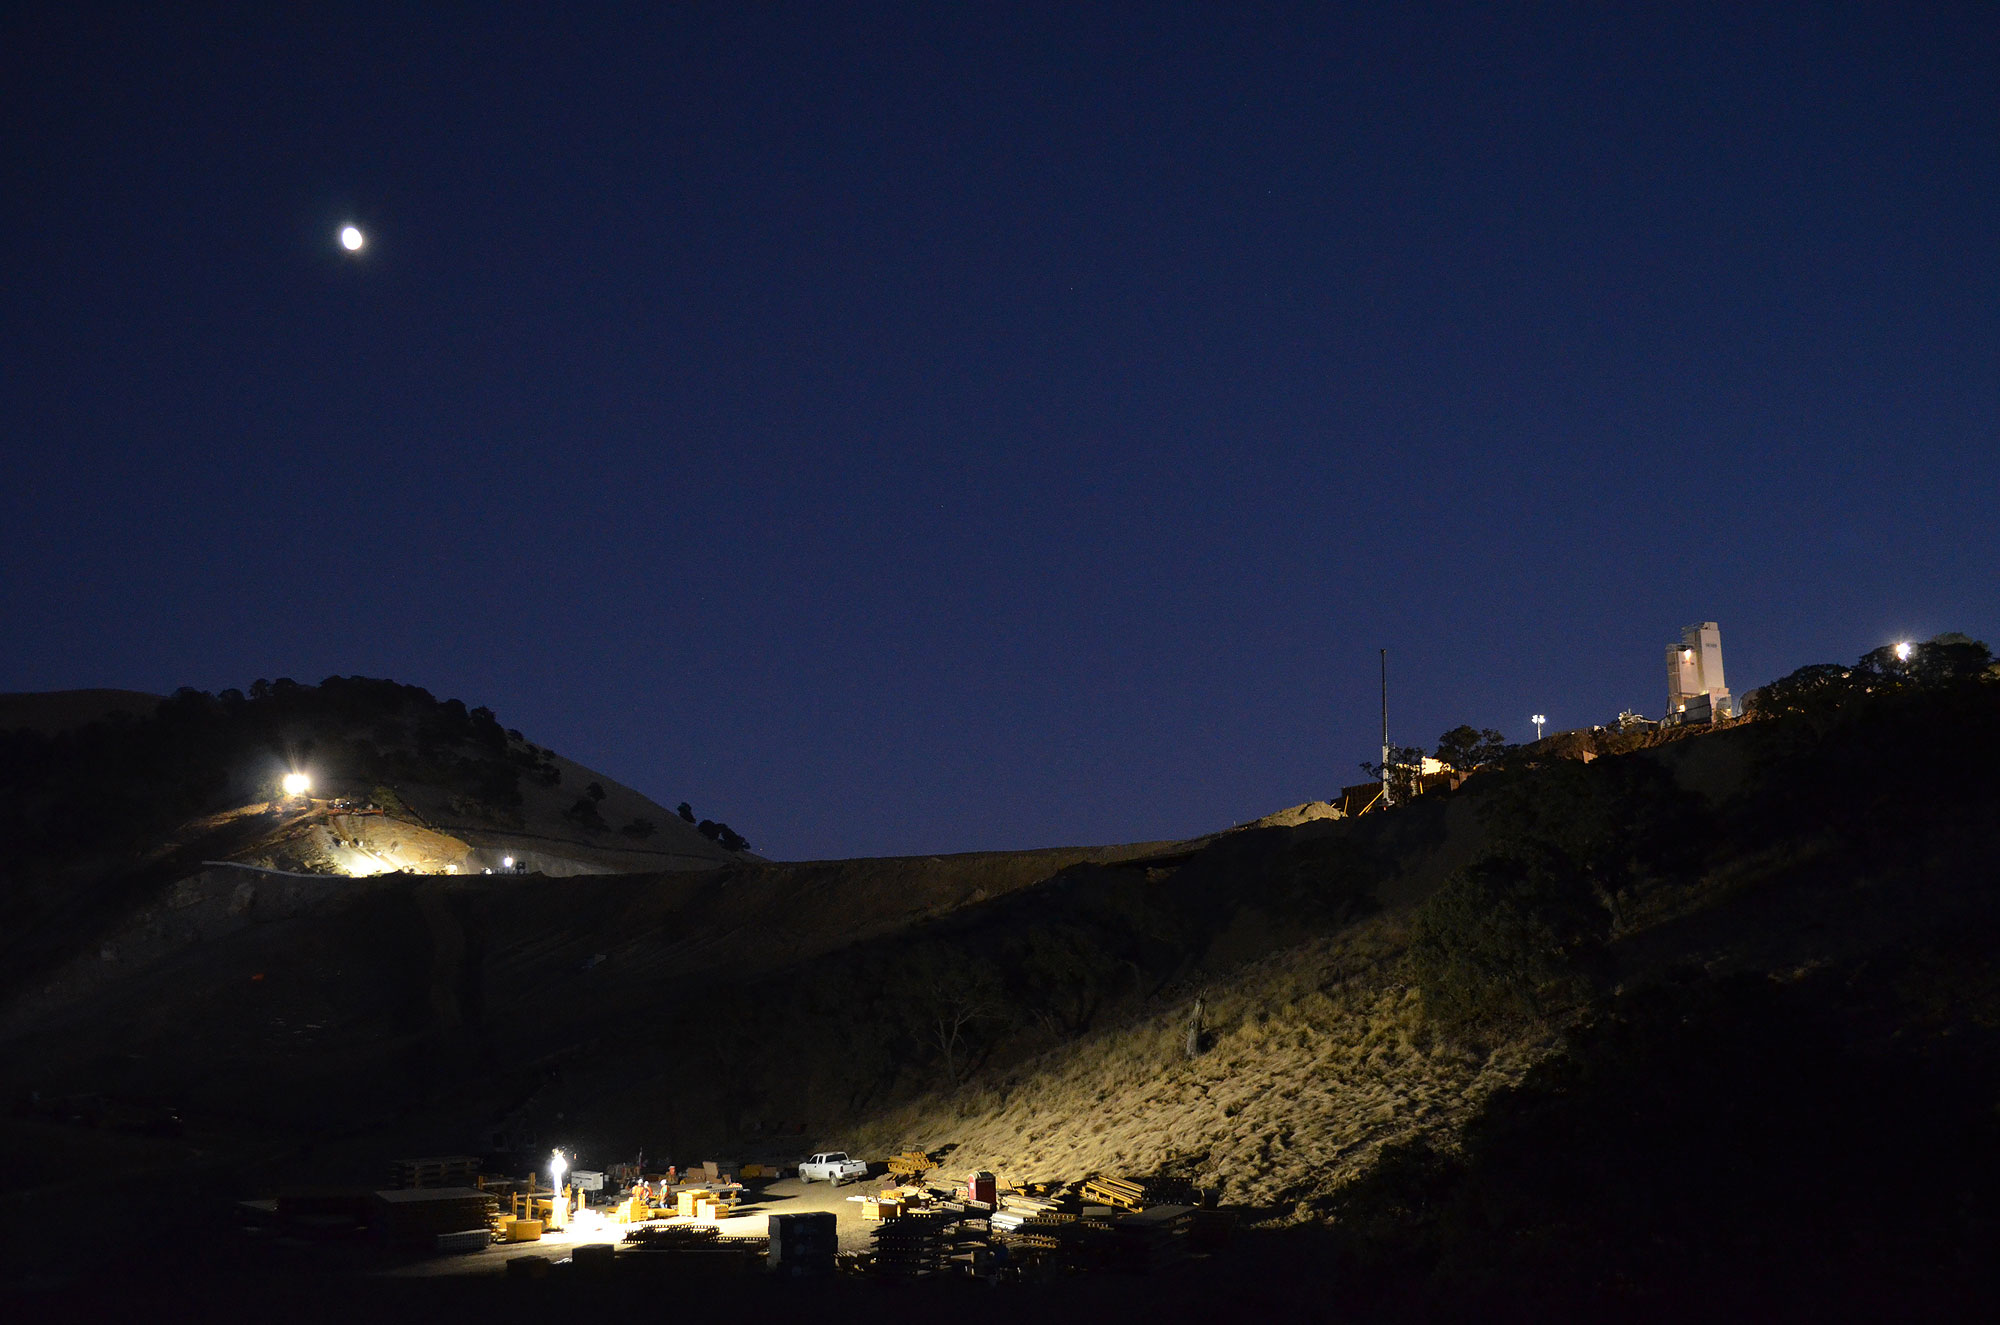 The moon shines over the Los Vaqueros